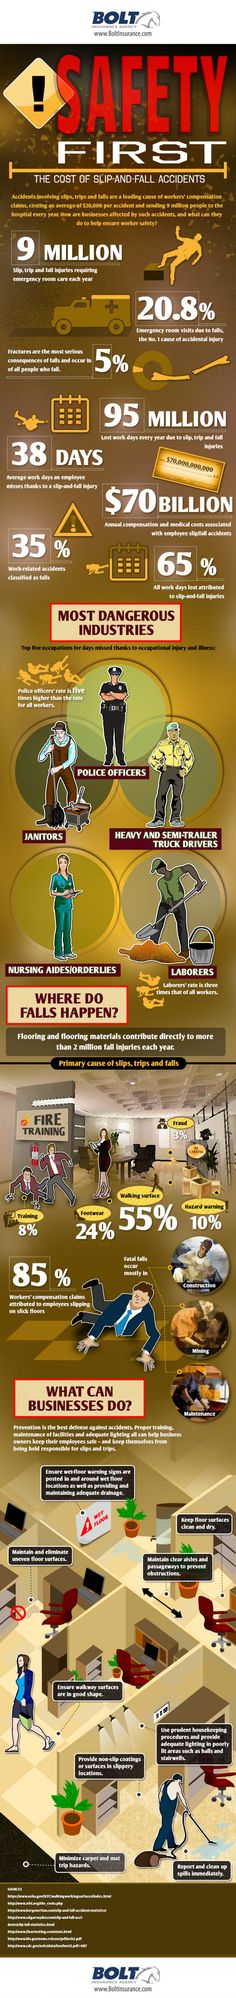 Infographic: The High Cost of Slips, Trips and Falls. Did you know that 95 million workdays per year are lost due to slip-and-fall injuries? Fatal falls occur mostly in Construction, Mining and Maintenance Industries. Safety Quotes, Safety Posters, Personal Safety, Personal Injury, Work Related Injuries, Safety Meeting, Construction Safety, Family Safety, Safety Training